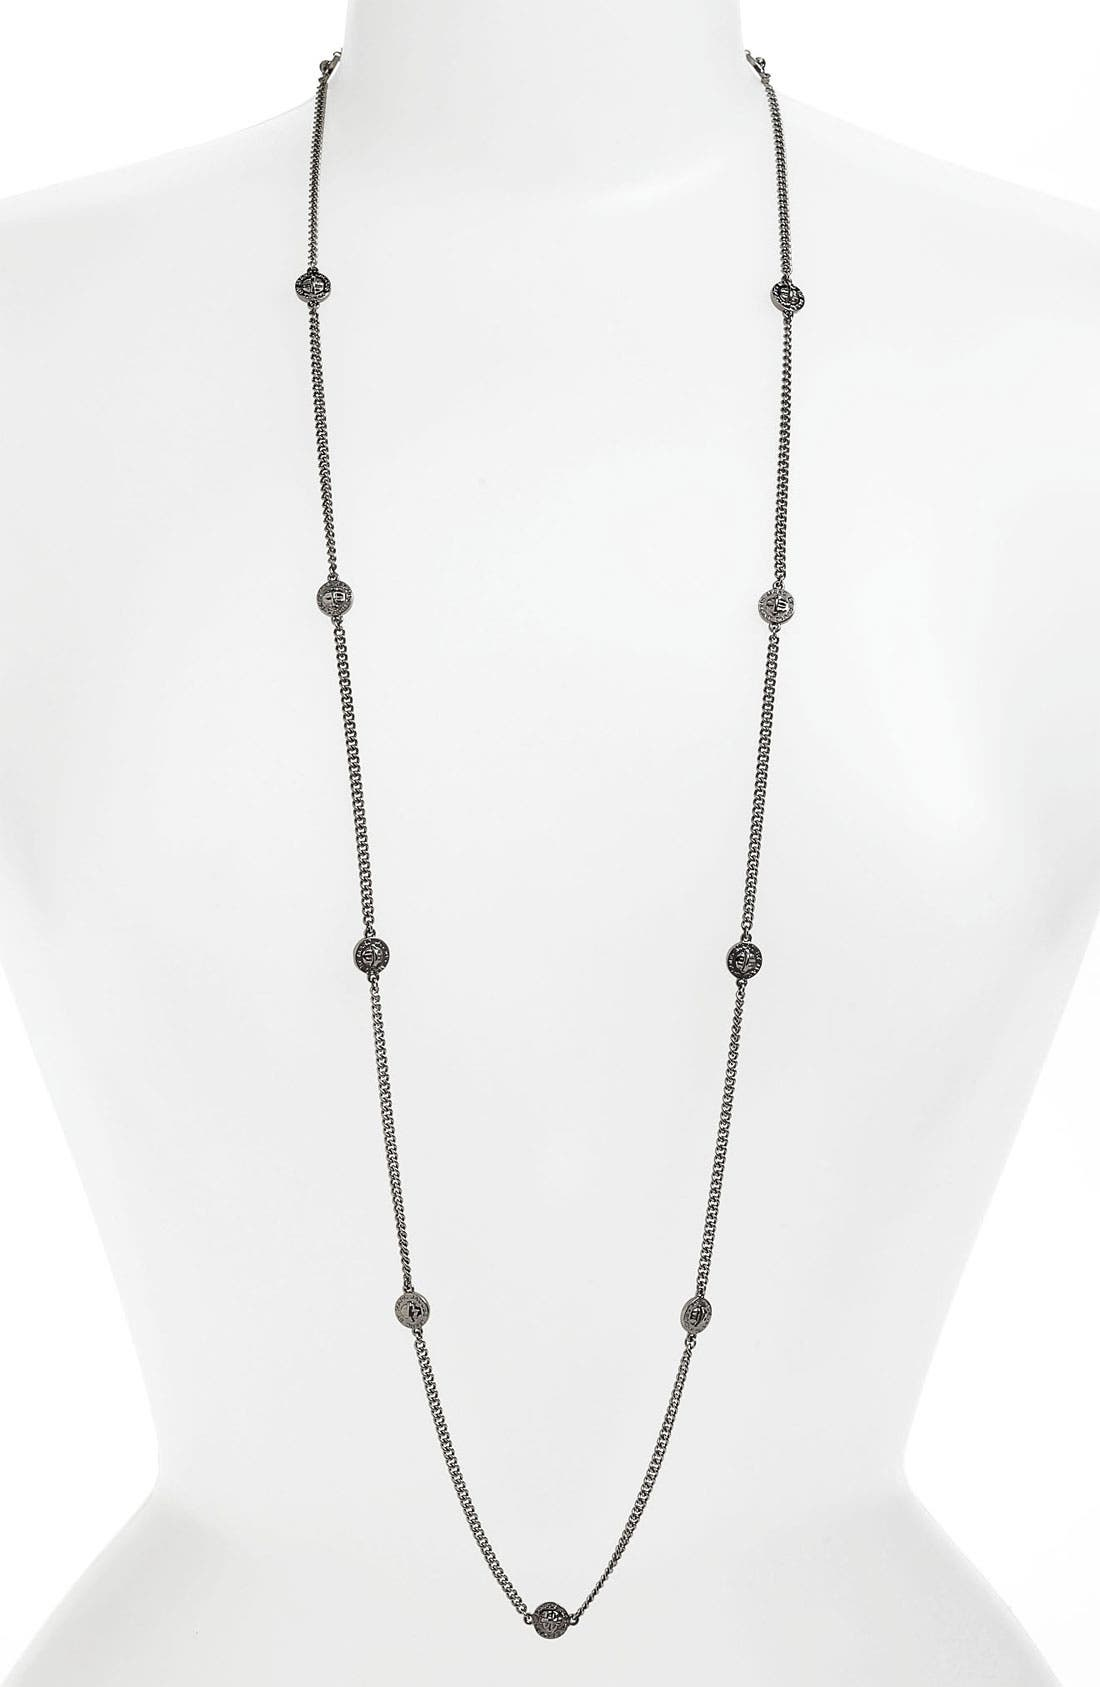 Main Image - MARC BY MARC JACOBS Long Station Necklace